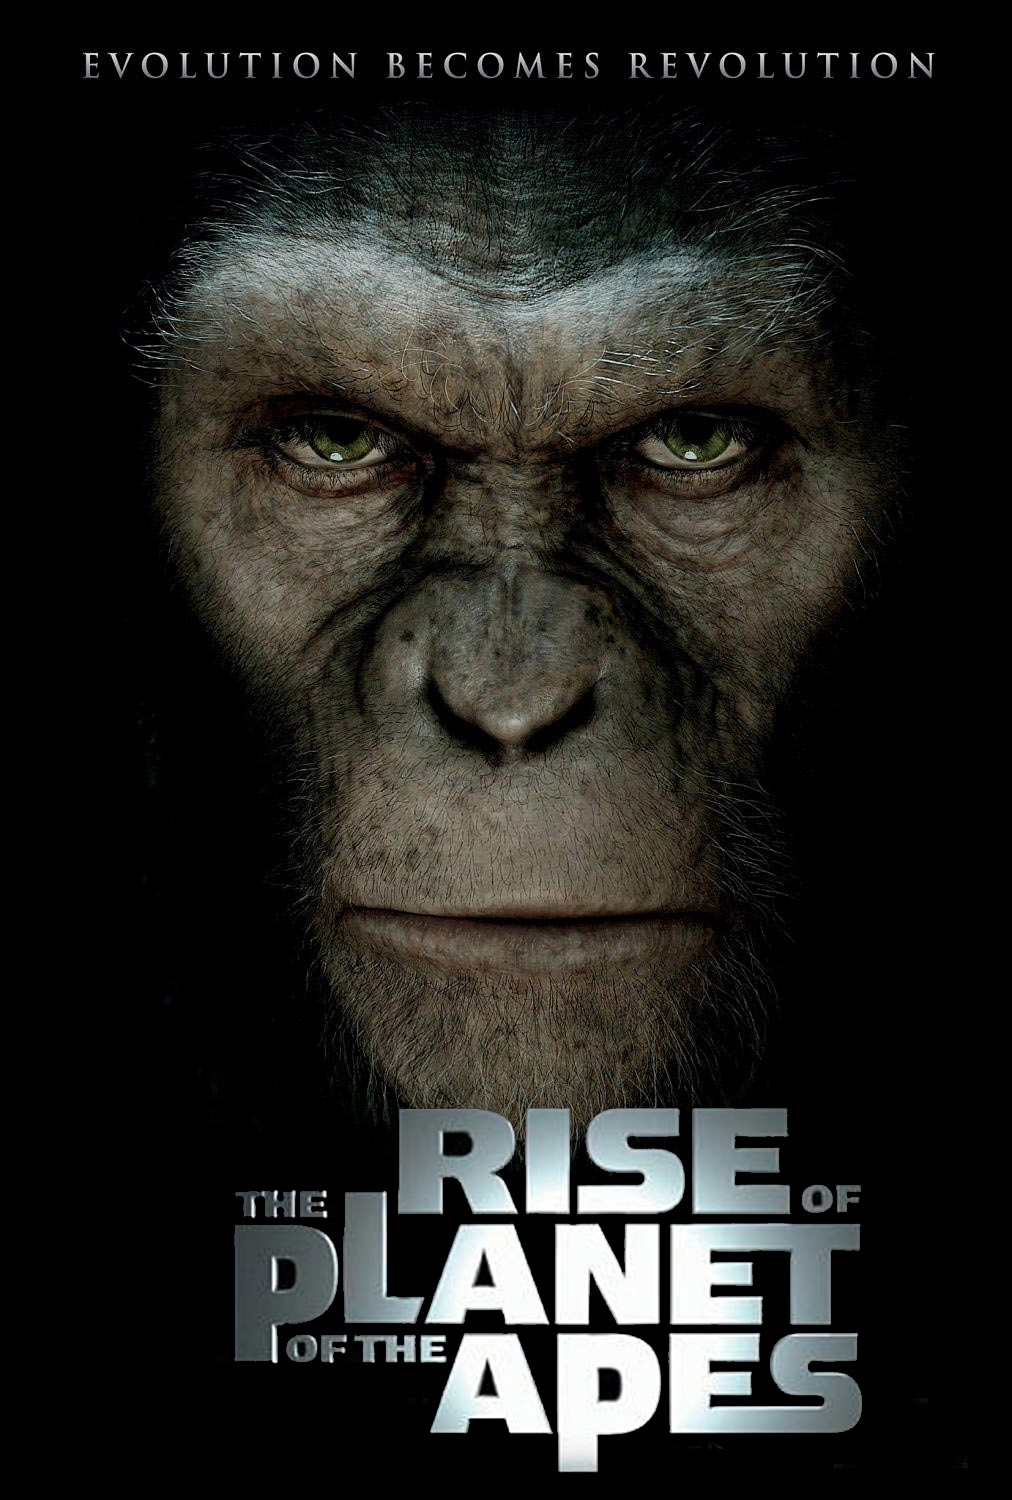 Rise of the Planet of the Apes. A close up of the face of an ape who looks determined.